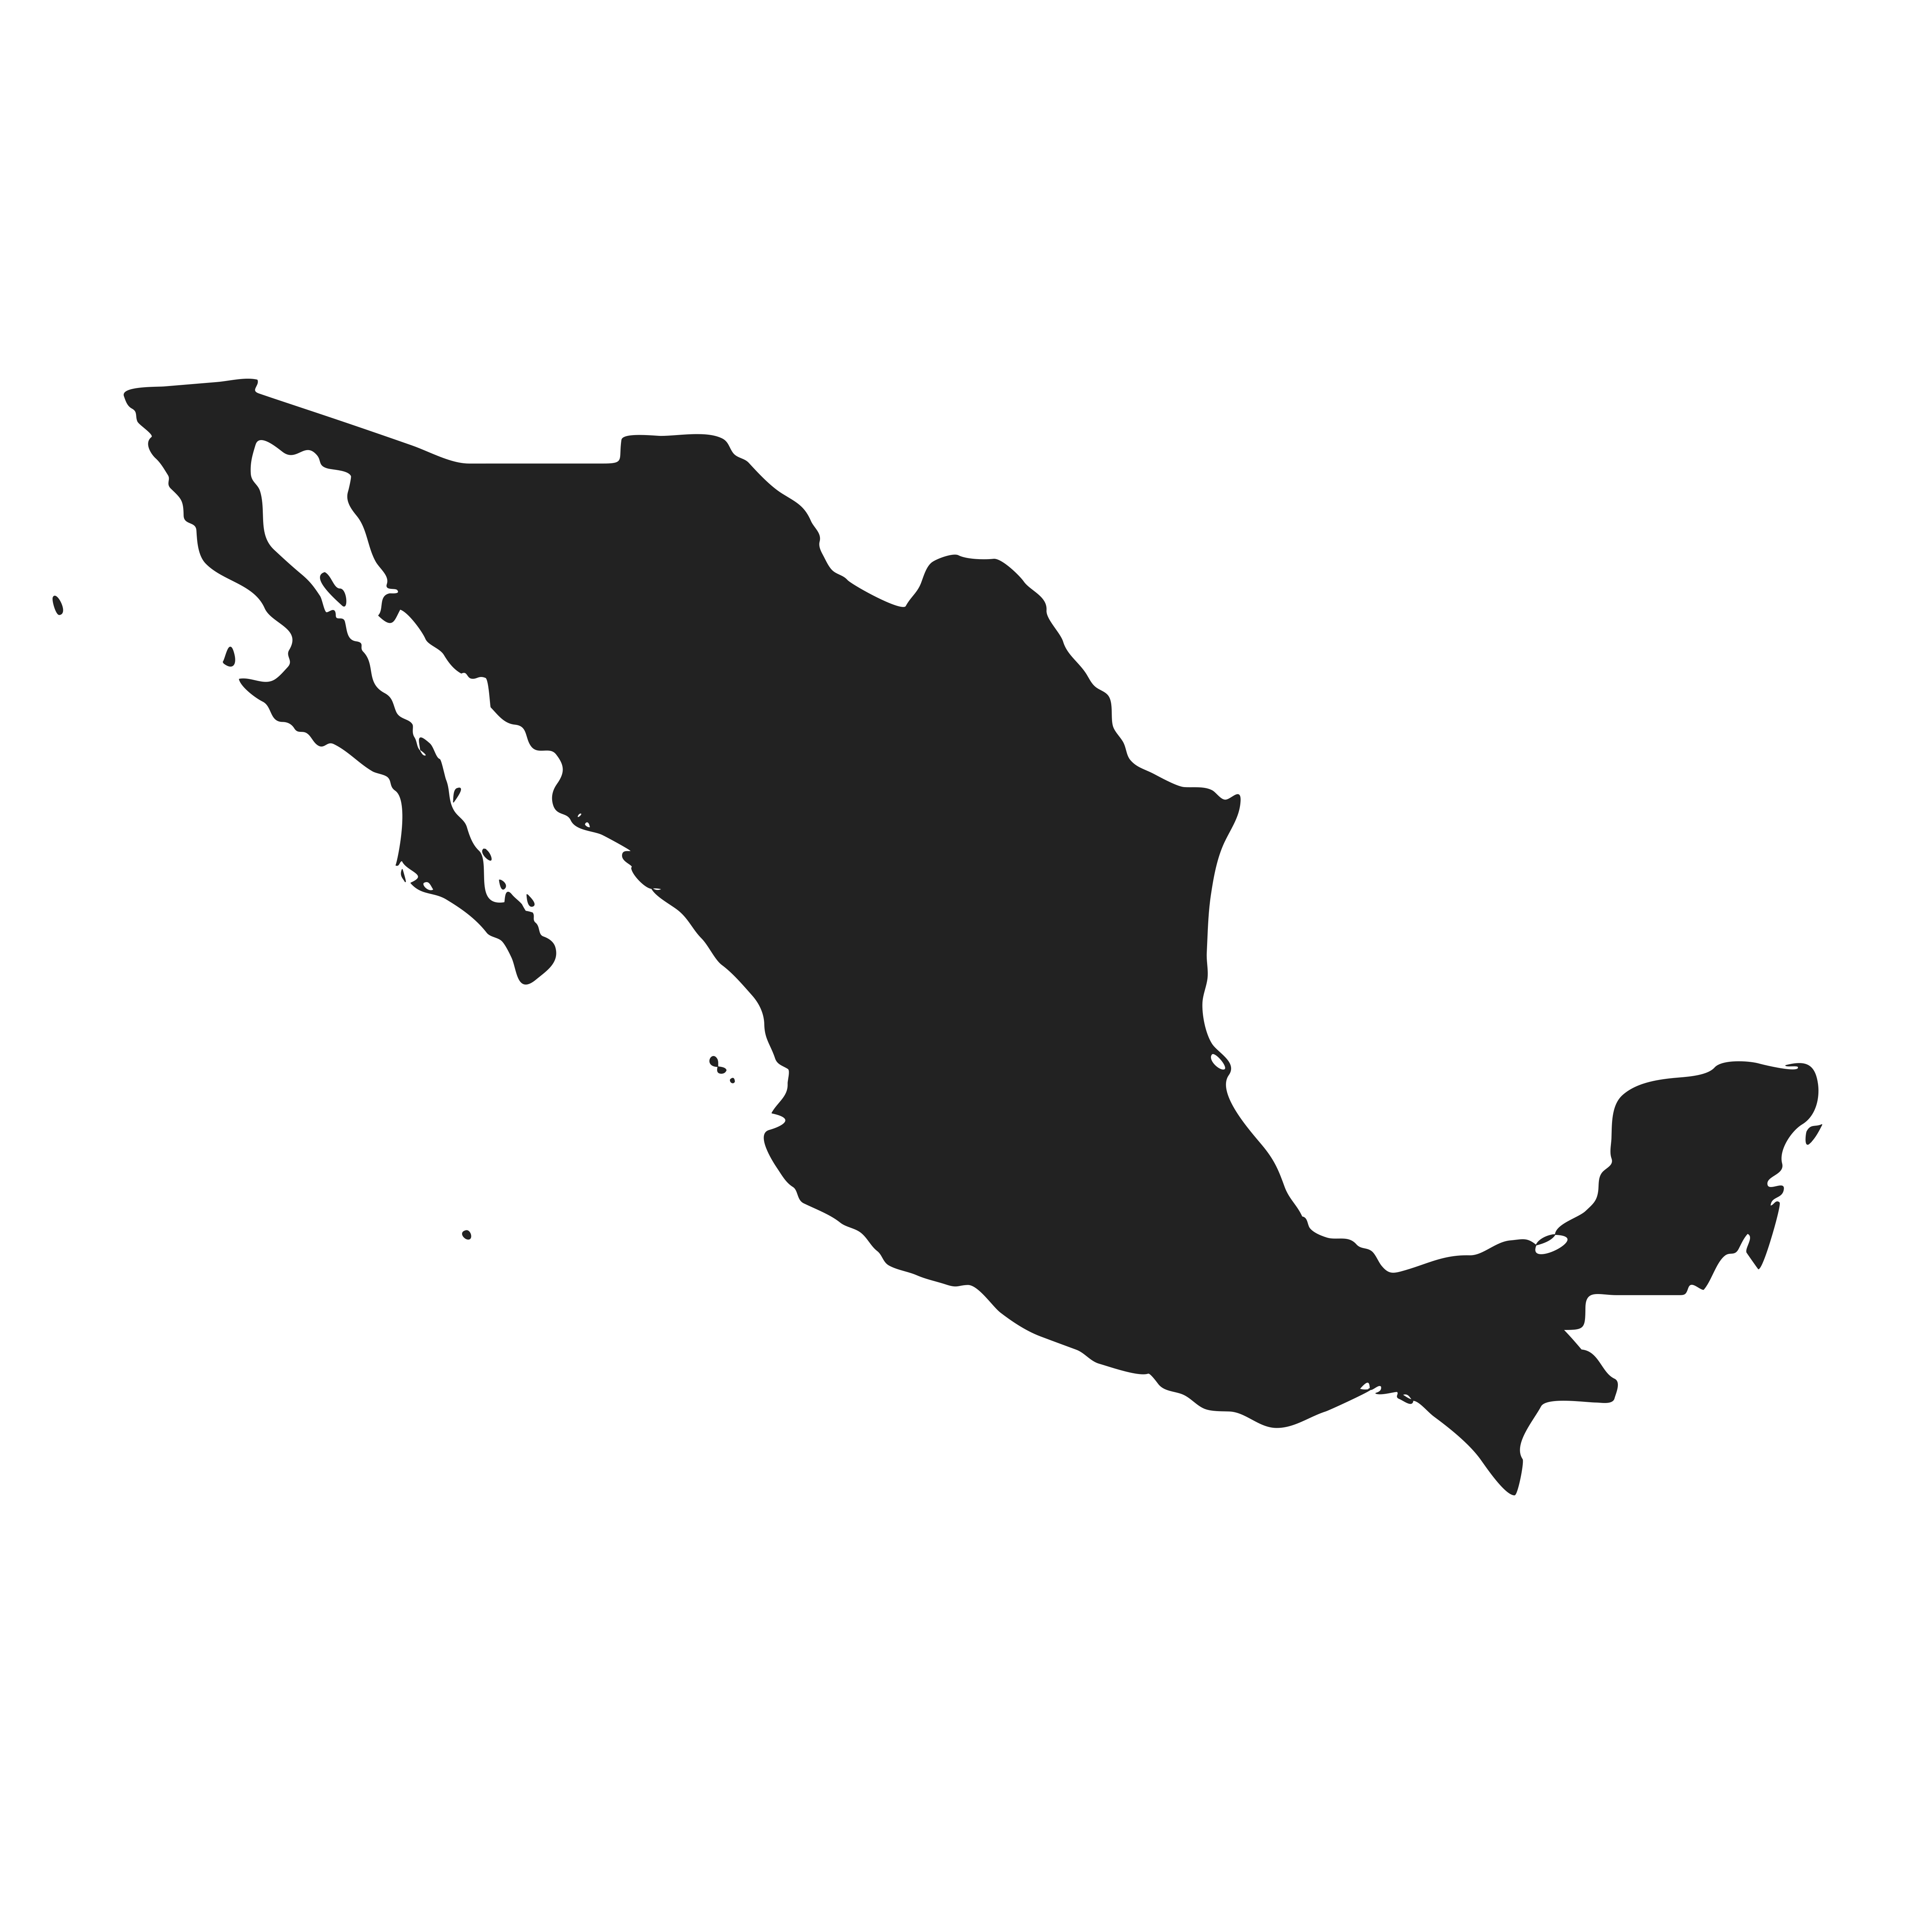 México png silhouette mexico. Whaletrips the best tips